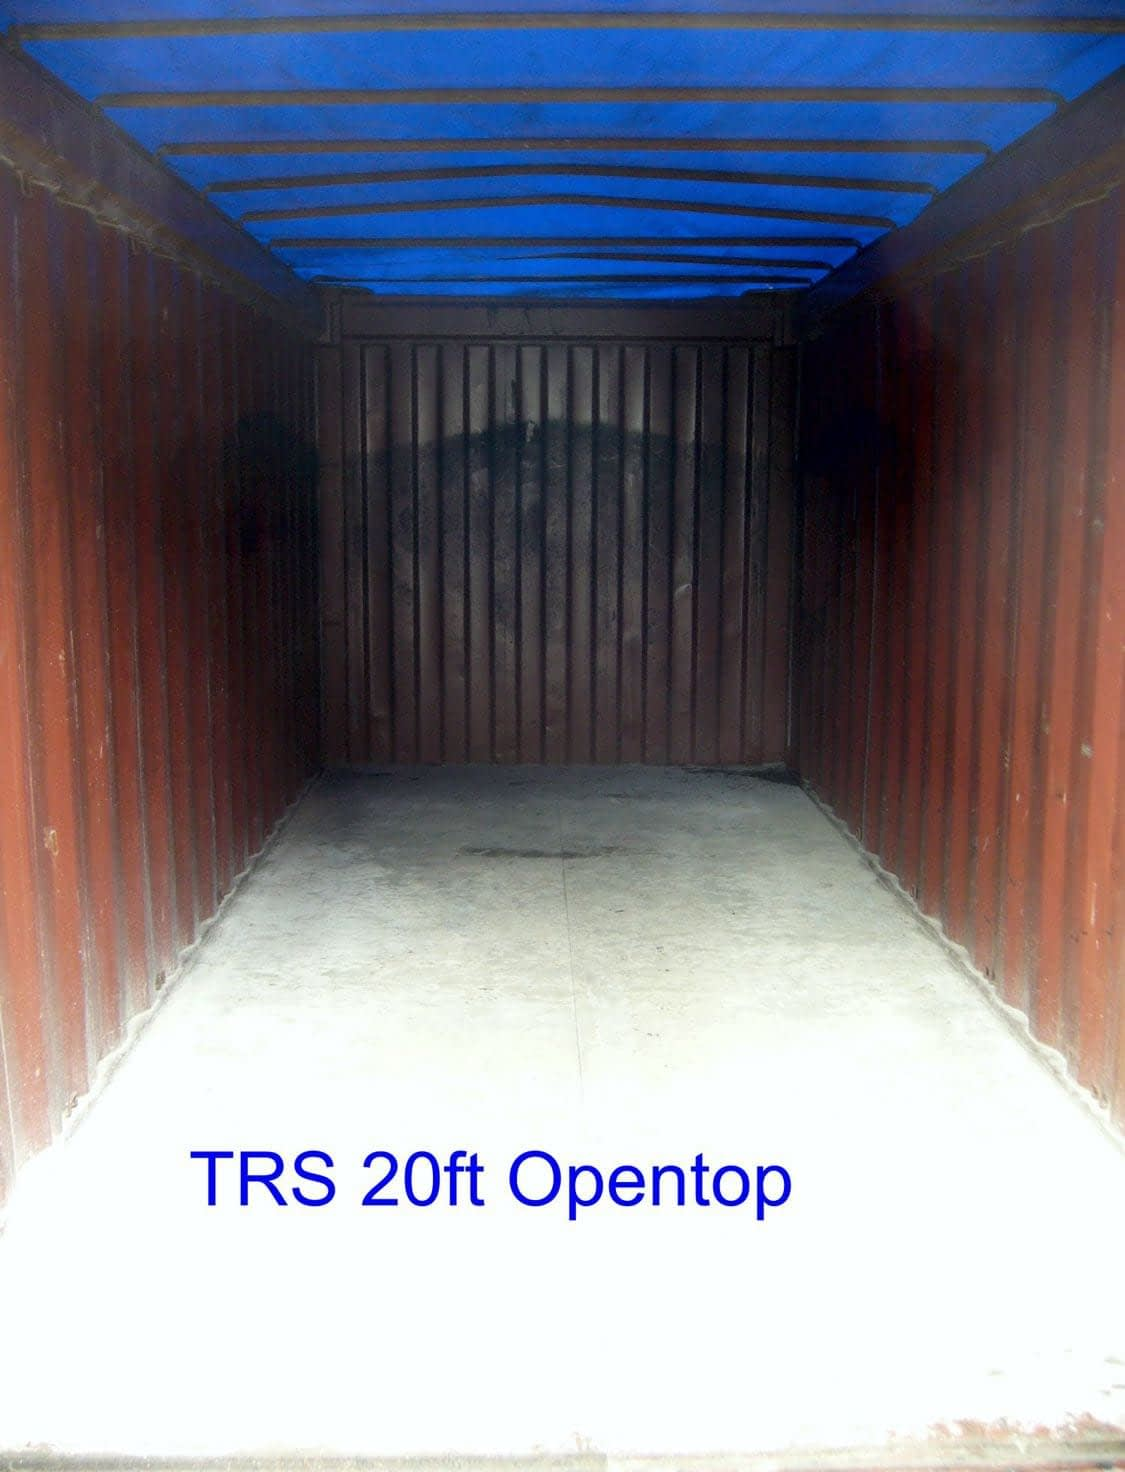 TRS sells and rents used 20ft canvas top opentops